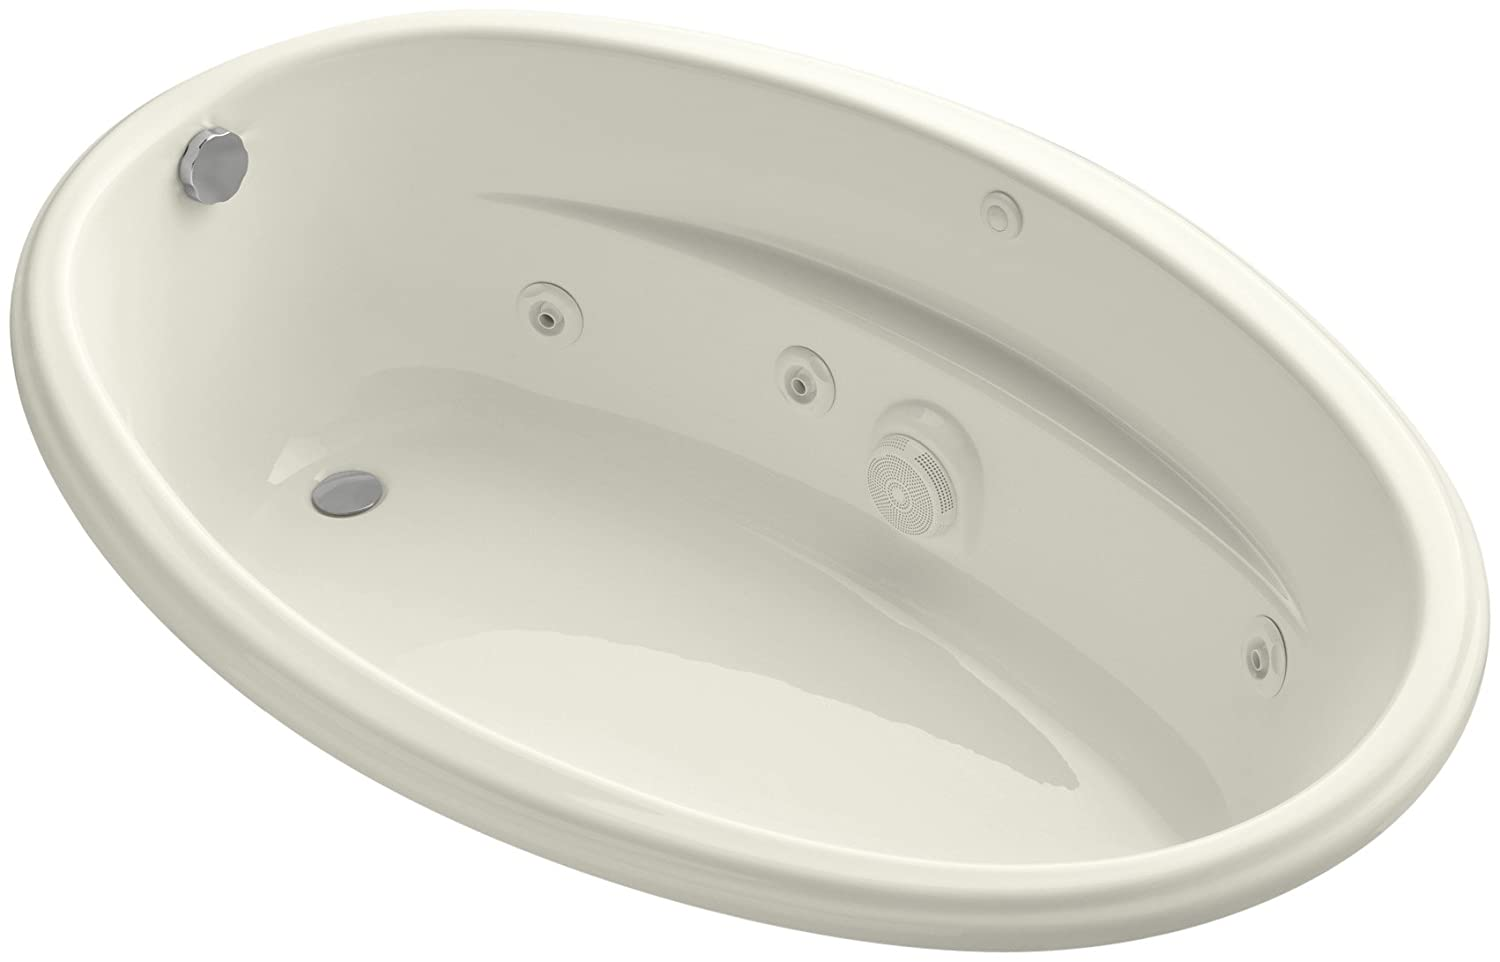 KOHLER K-1146-0 6040 Oval Whirlpool, White - Freestanding Bathtubs ...